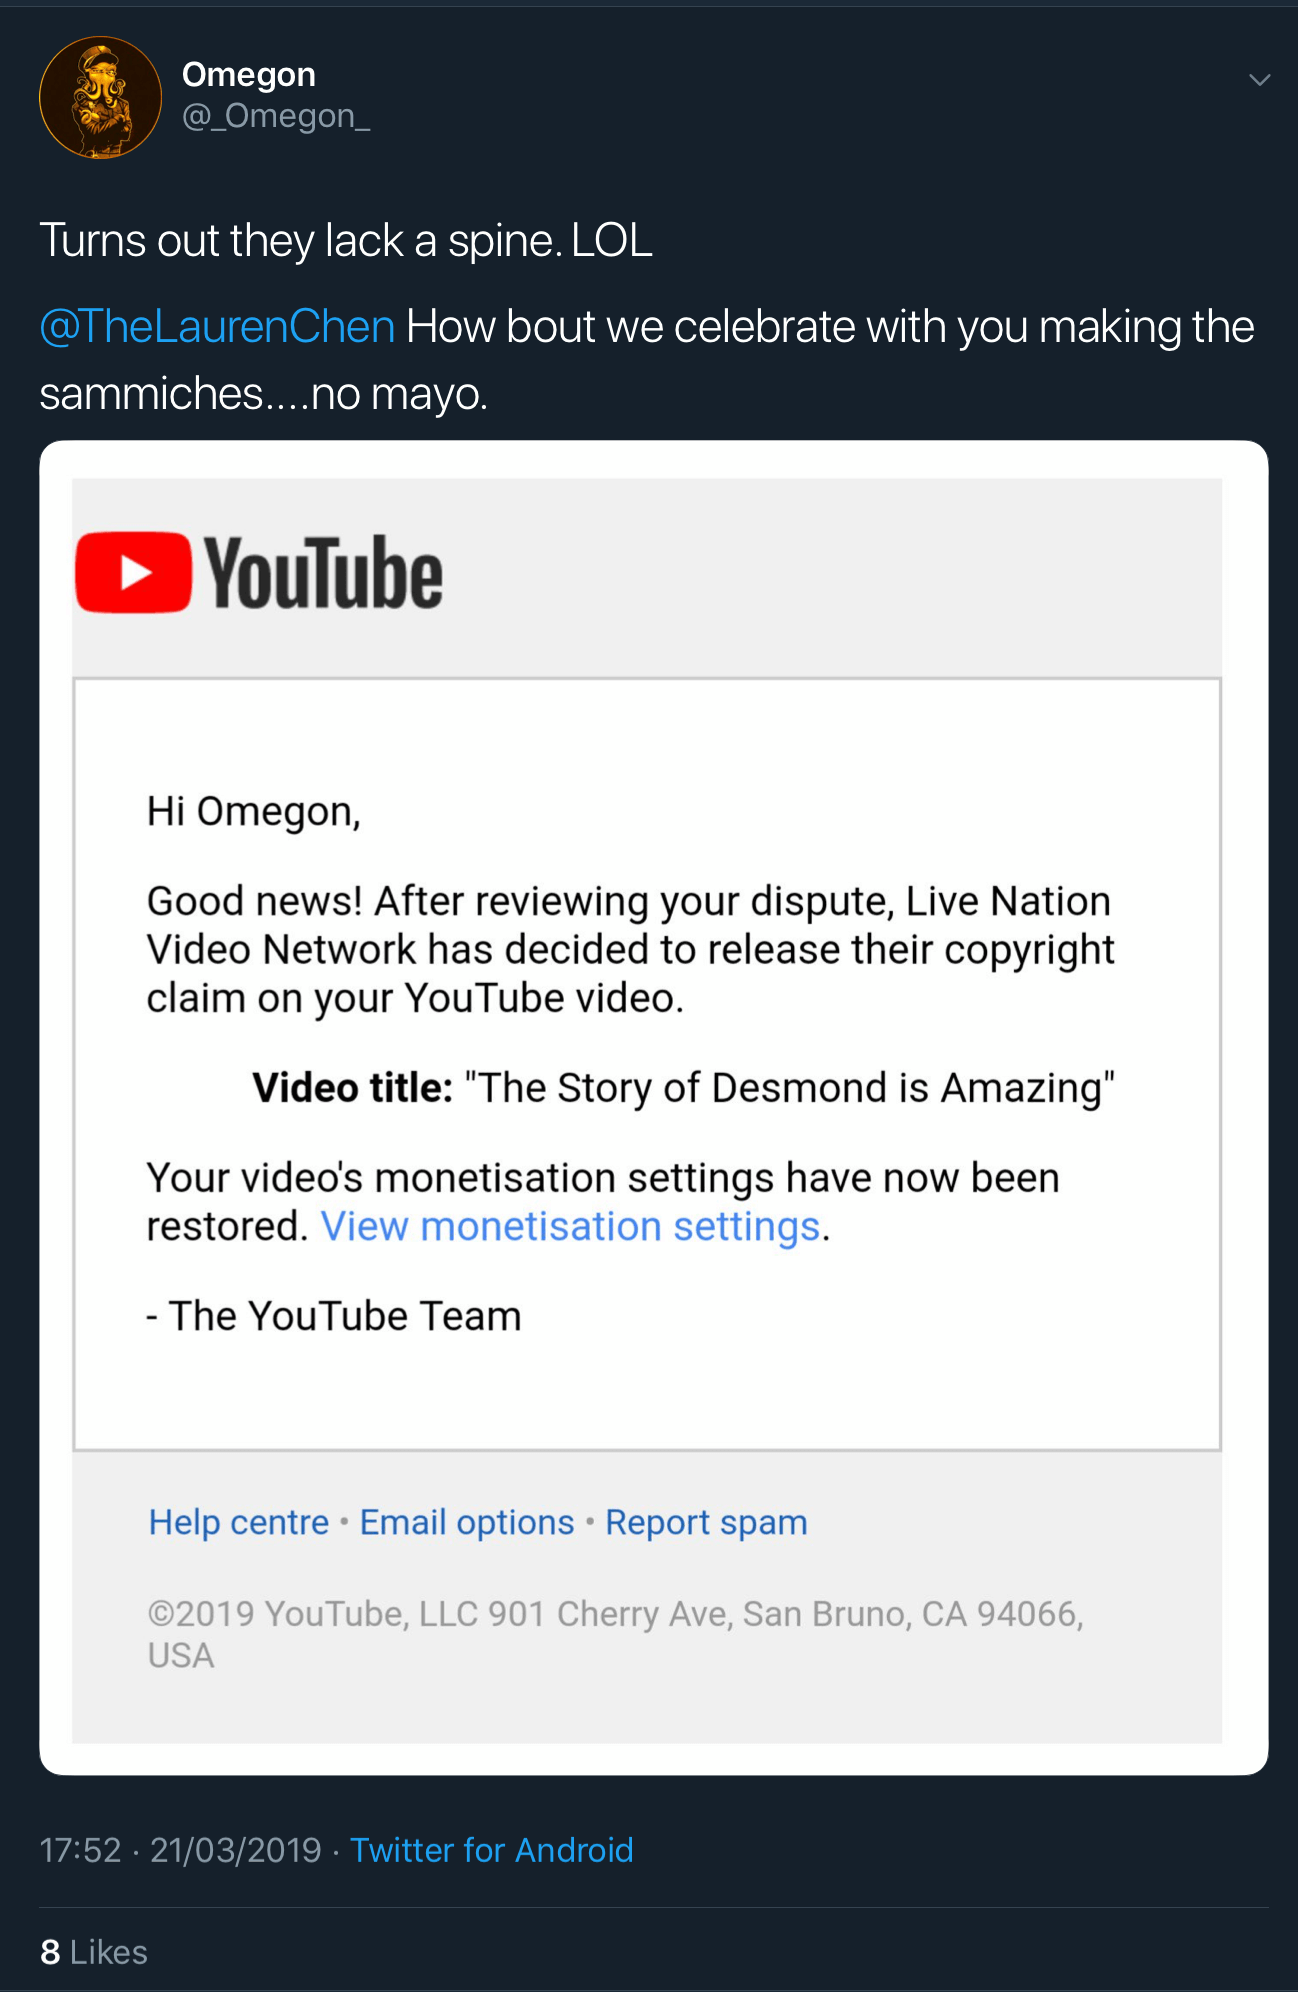 A tweet showing that the fake copyright claim against Omegon's video has been released.